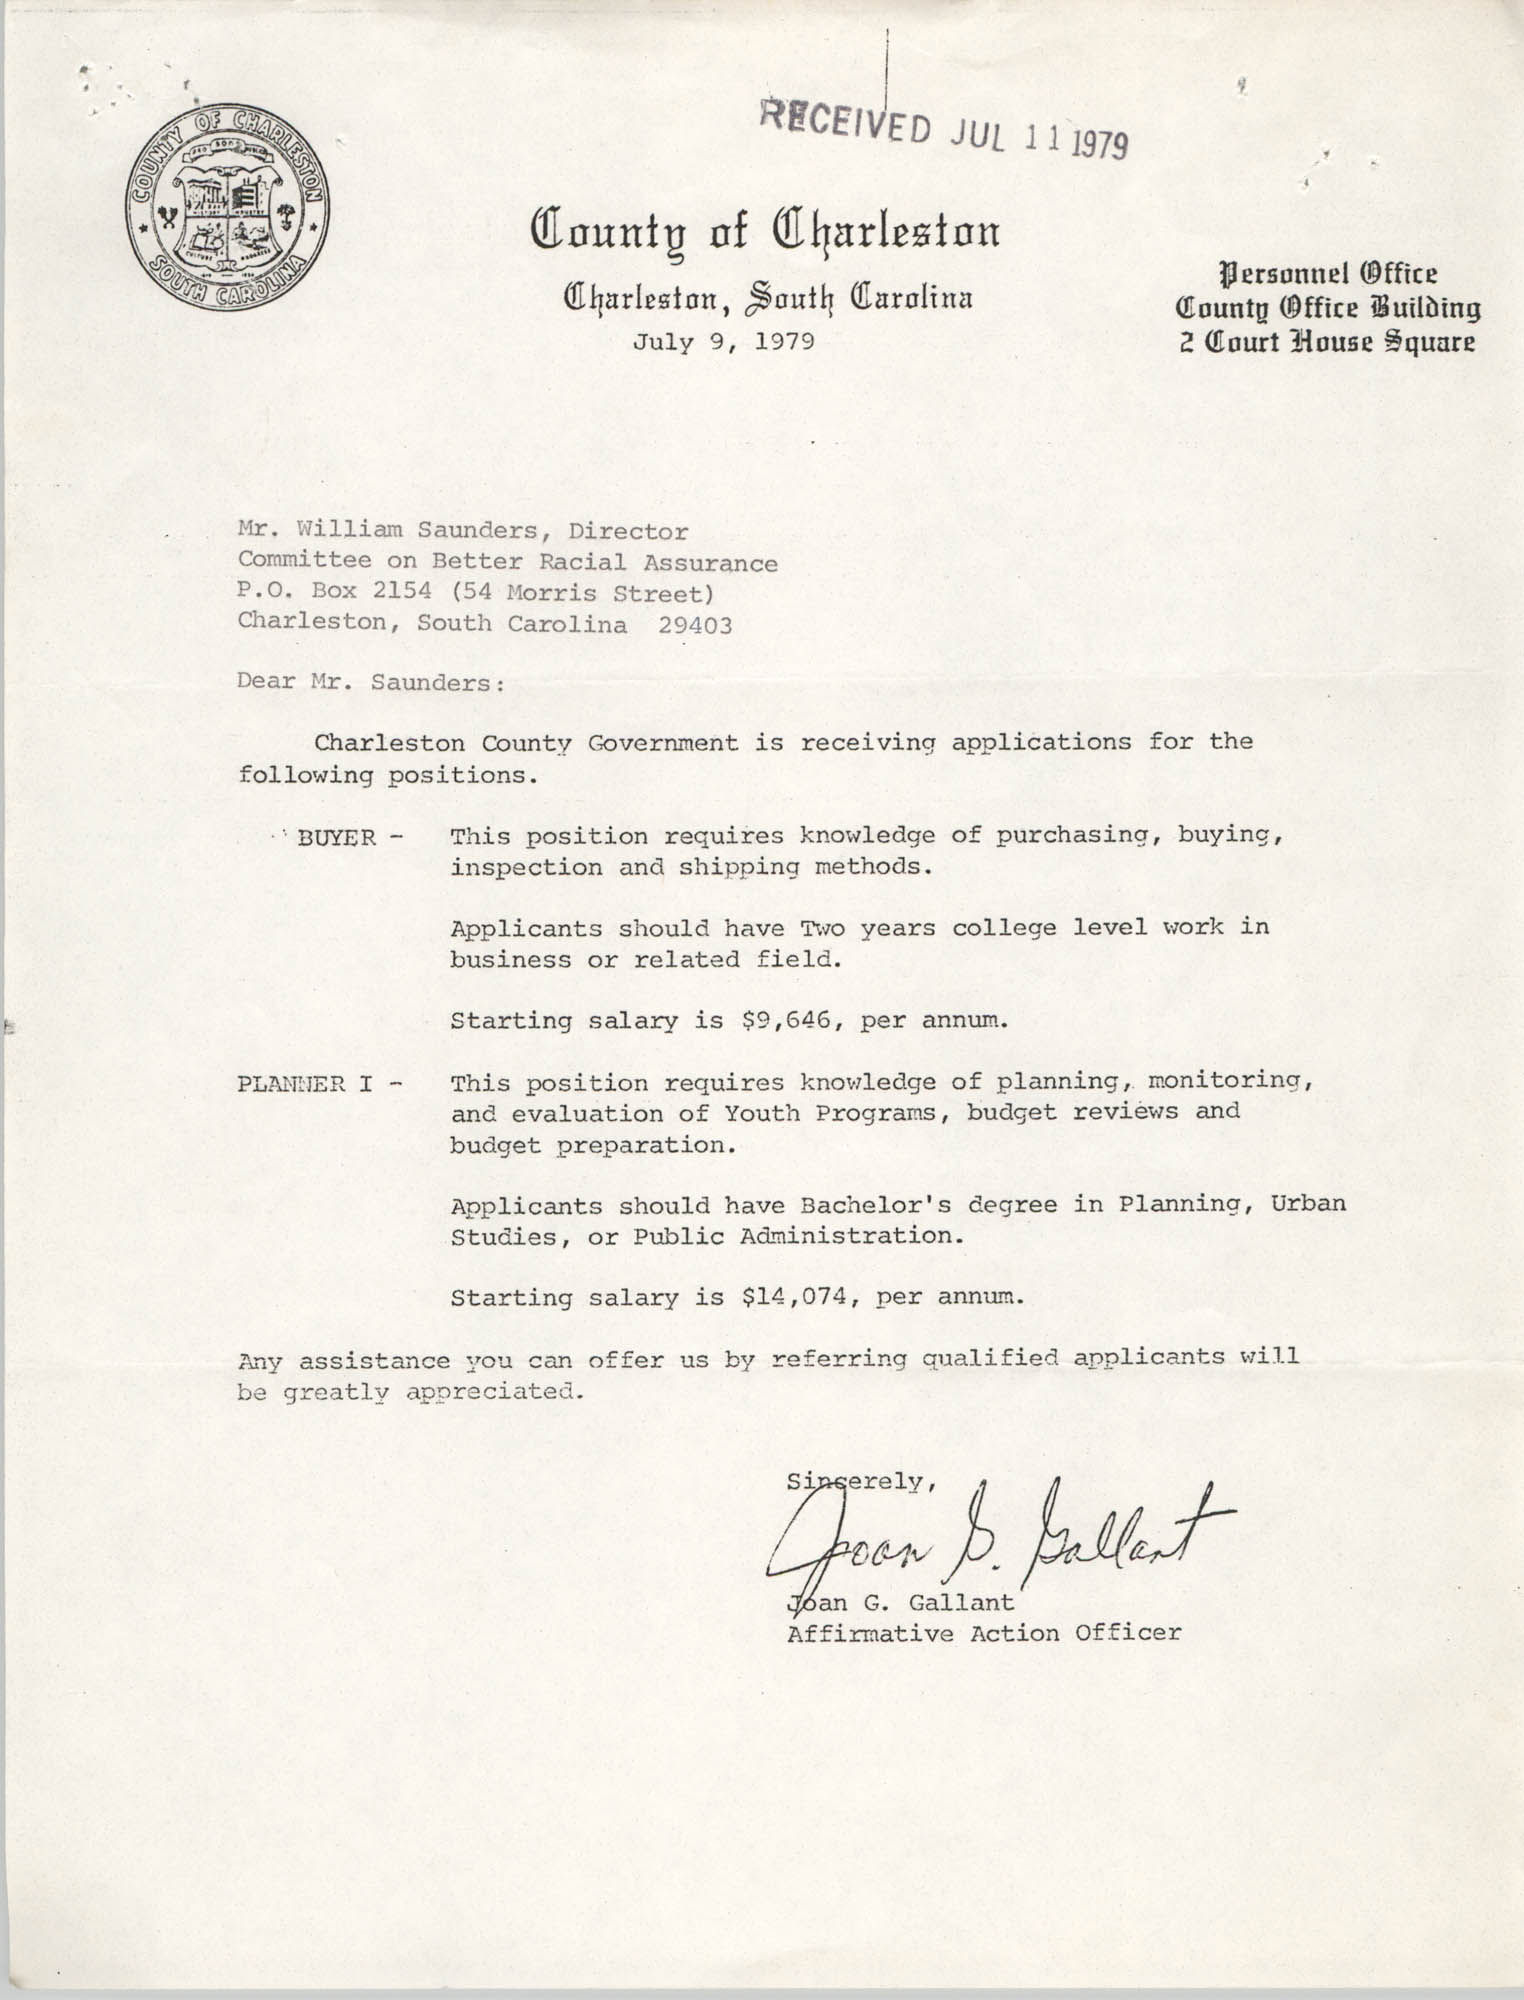 Letter from Joan G. Gallant to William Saunders, July 9, 1979